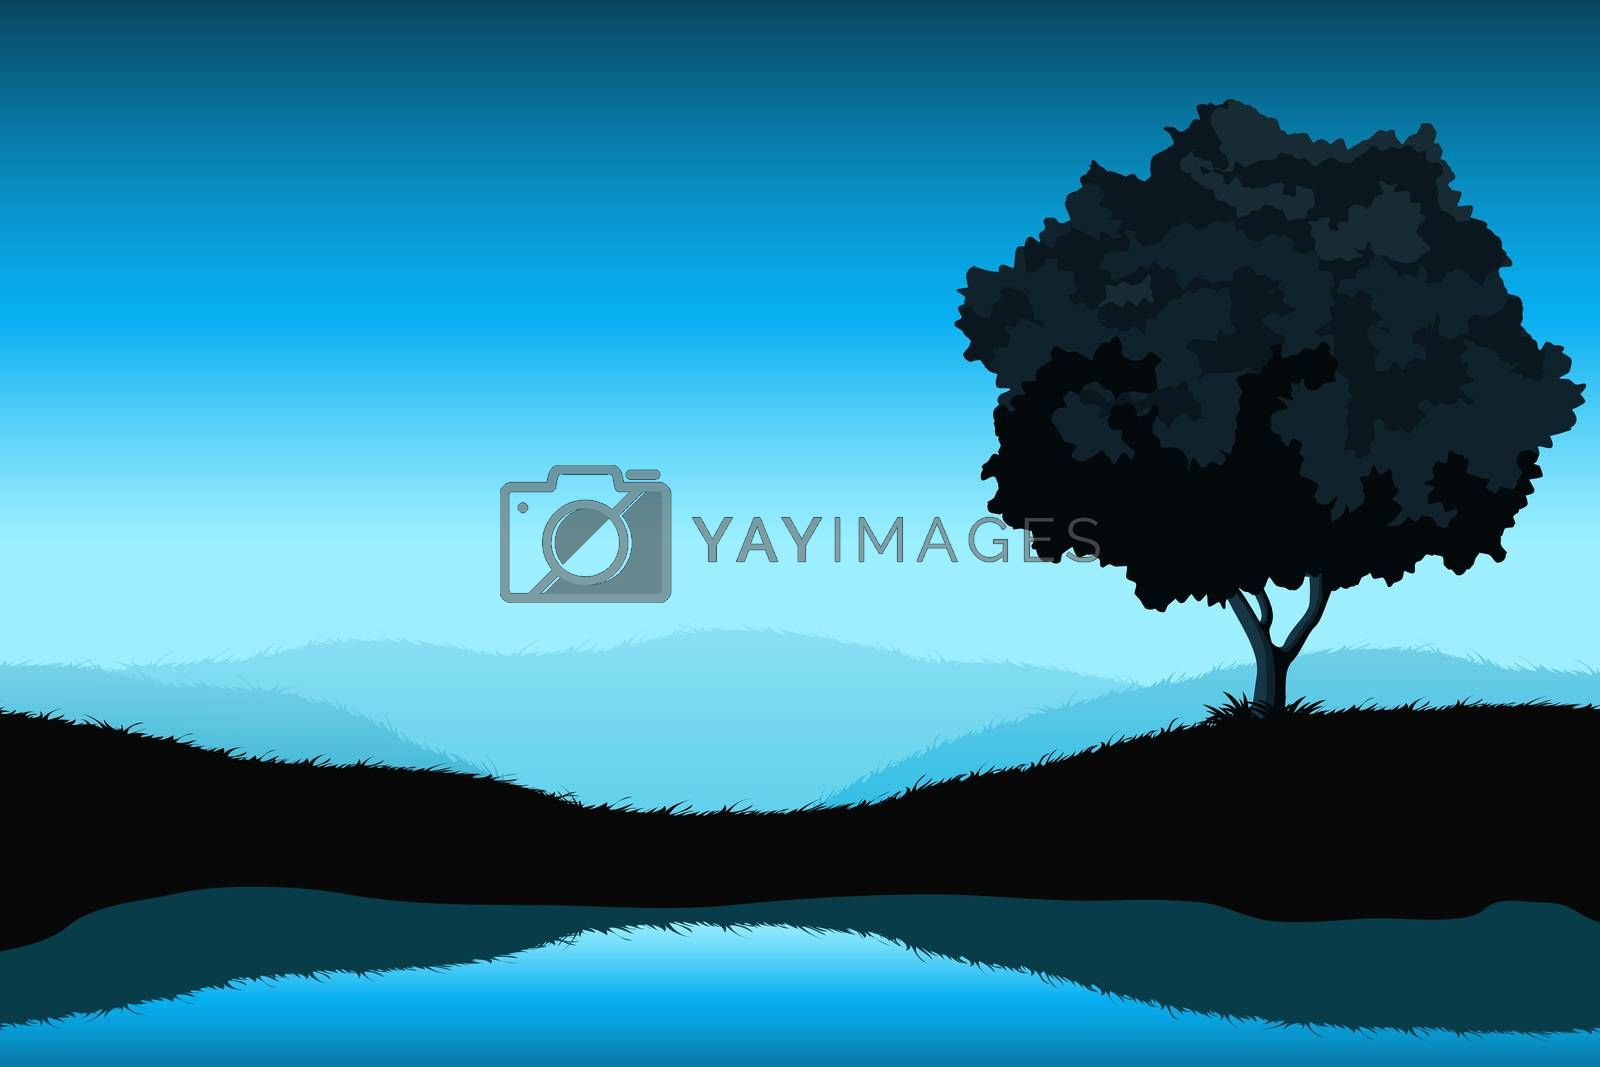 Amazing landscape by WaD